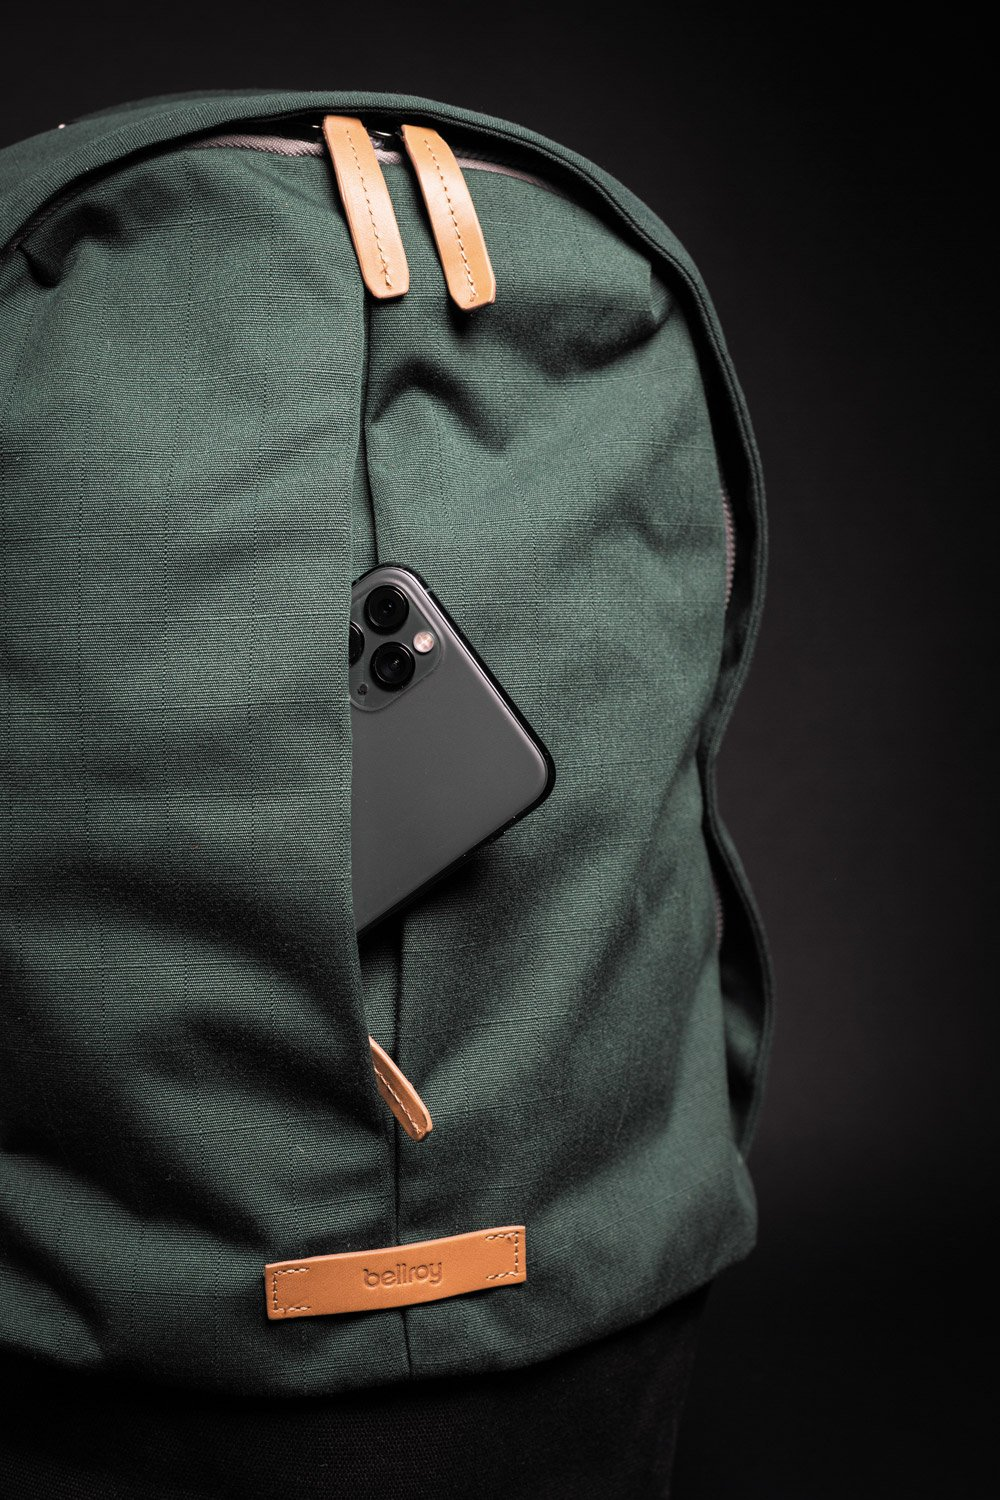 Bellroy Classic Backpack cellphone pocket